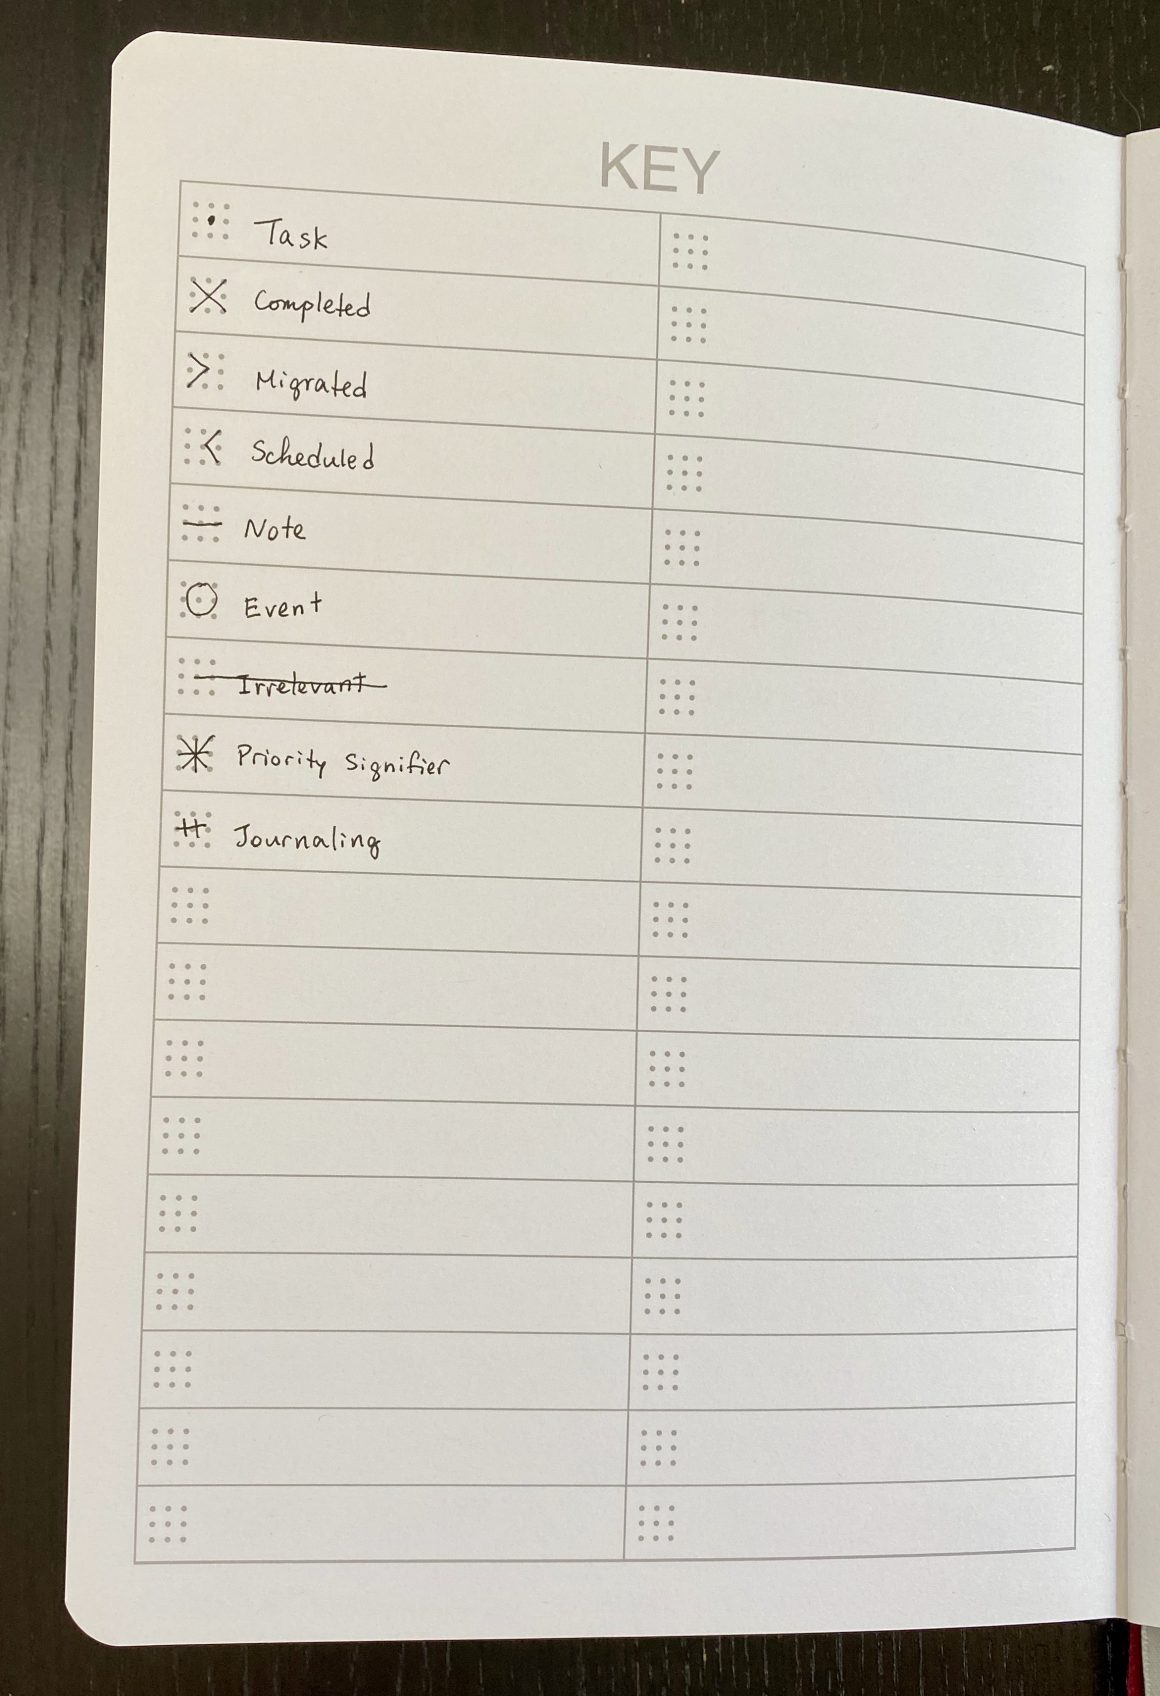 Picture of Key in Bullet Journal